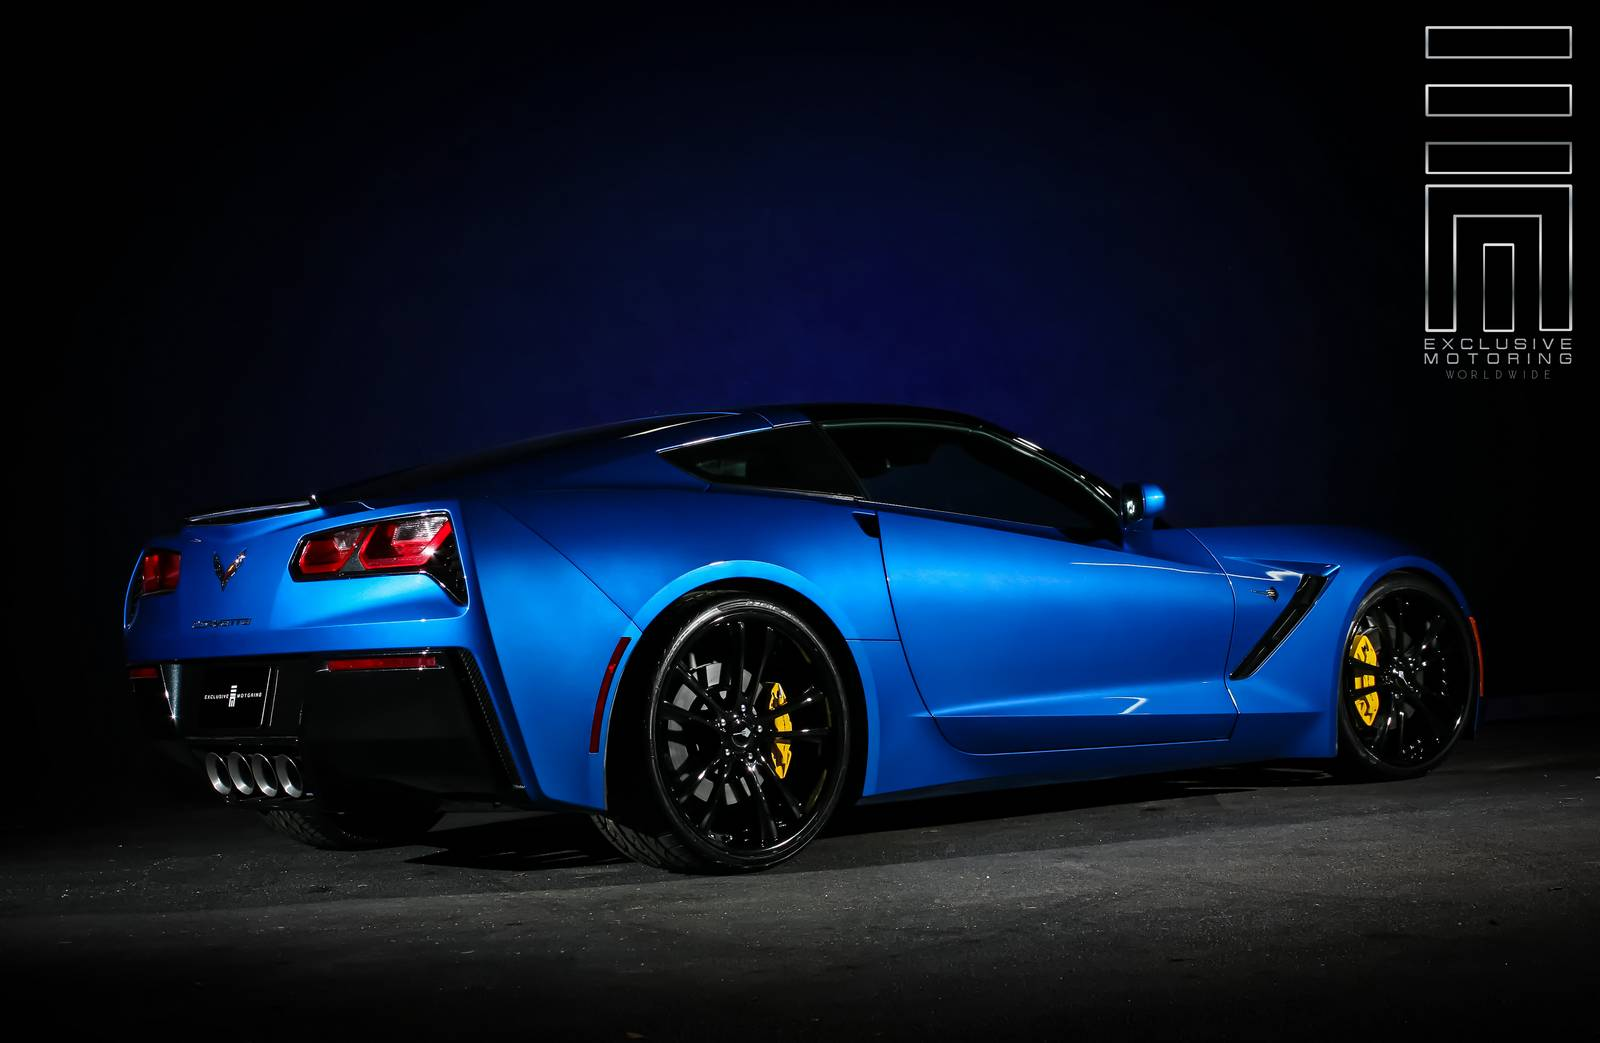 2014 corvette stingray by exclusive motoring gtspirit. Black Bedroom Furniture Sets. Home Design Ideas